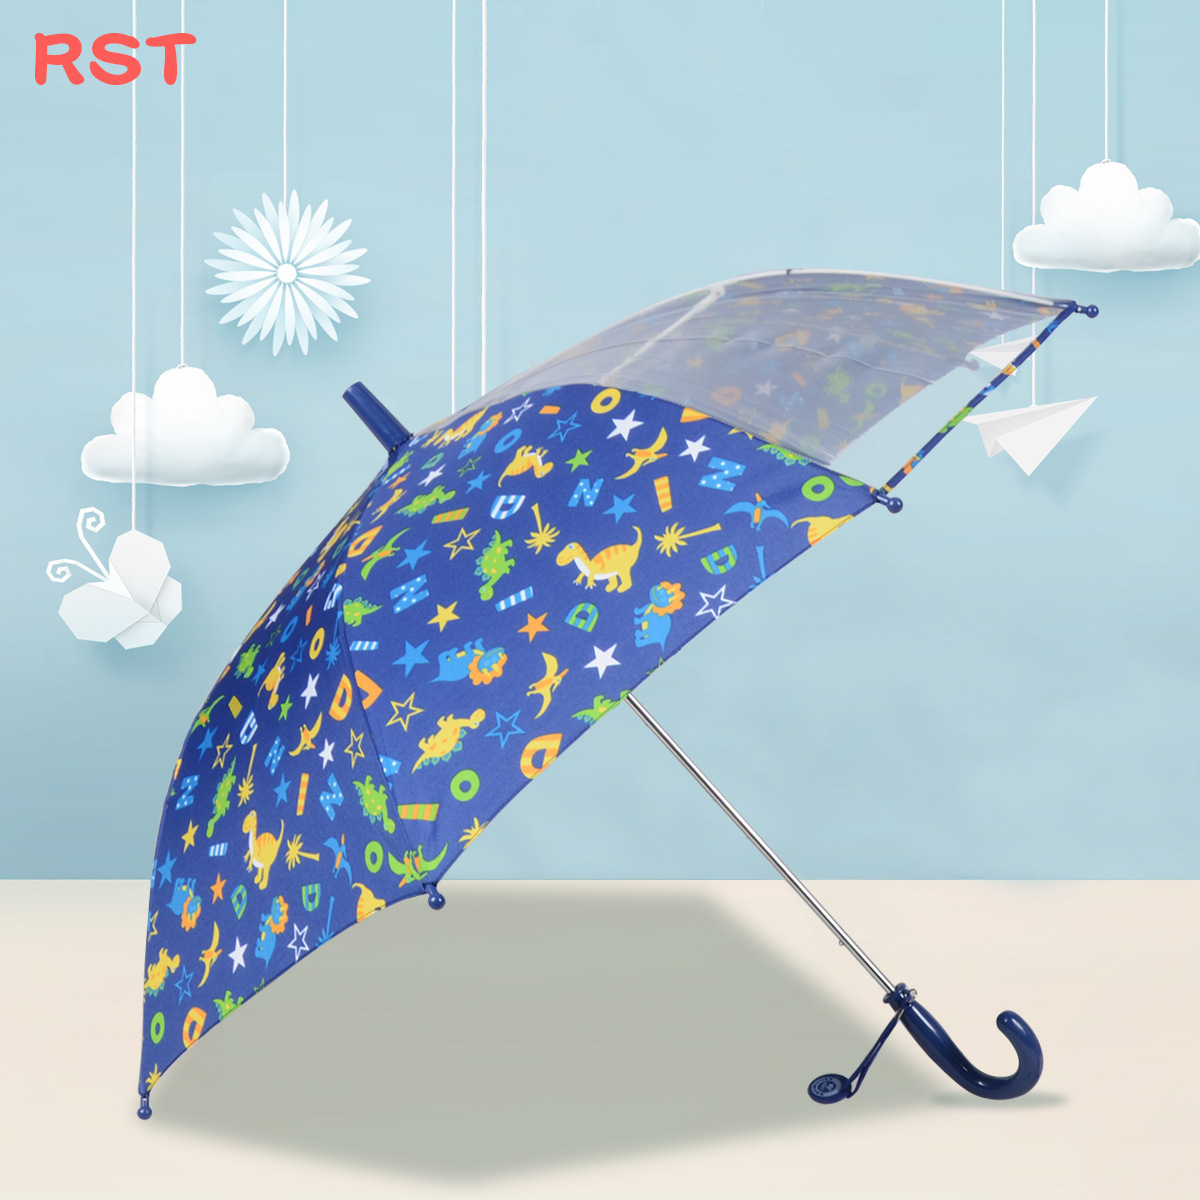 RST Umbrella Foreign Trade Export Strange New Creative Safe Transparent Skylight Fiber Bone Children All-Weather Umbrella